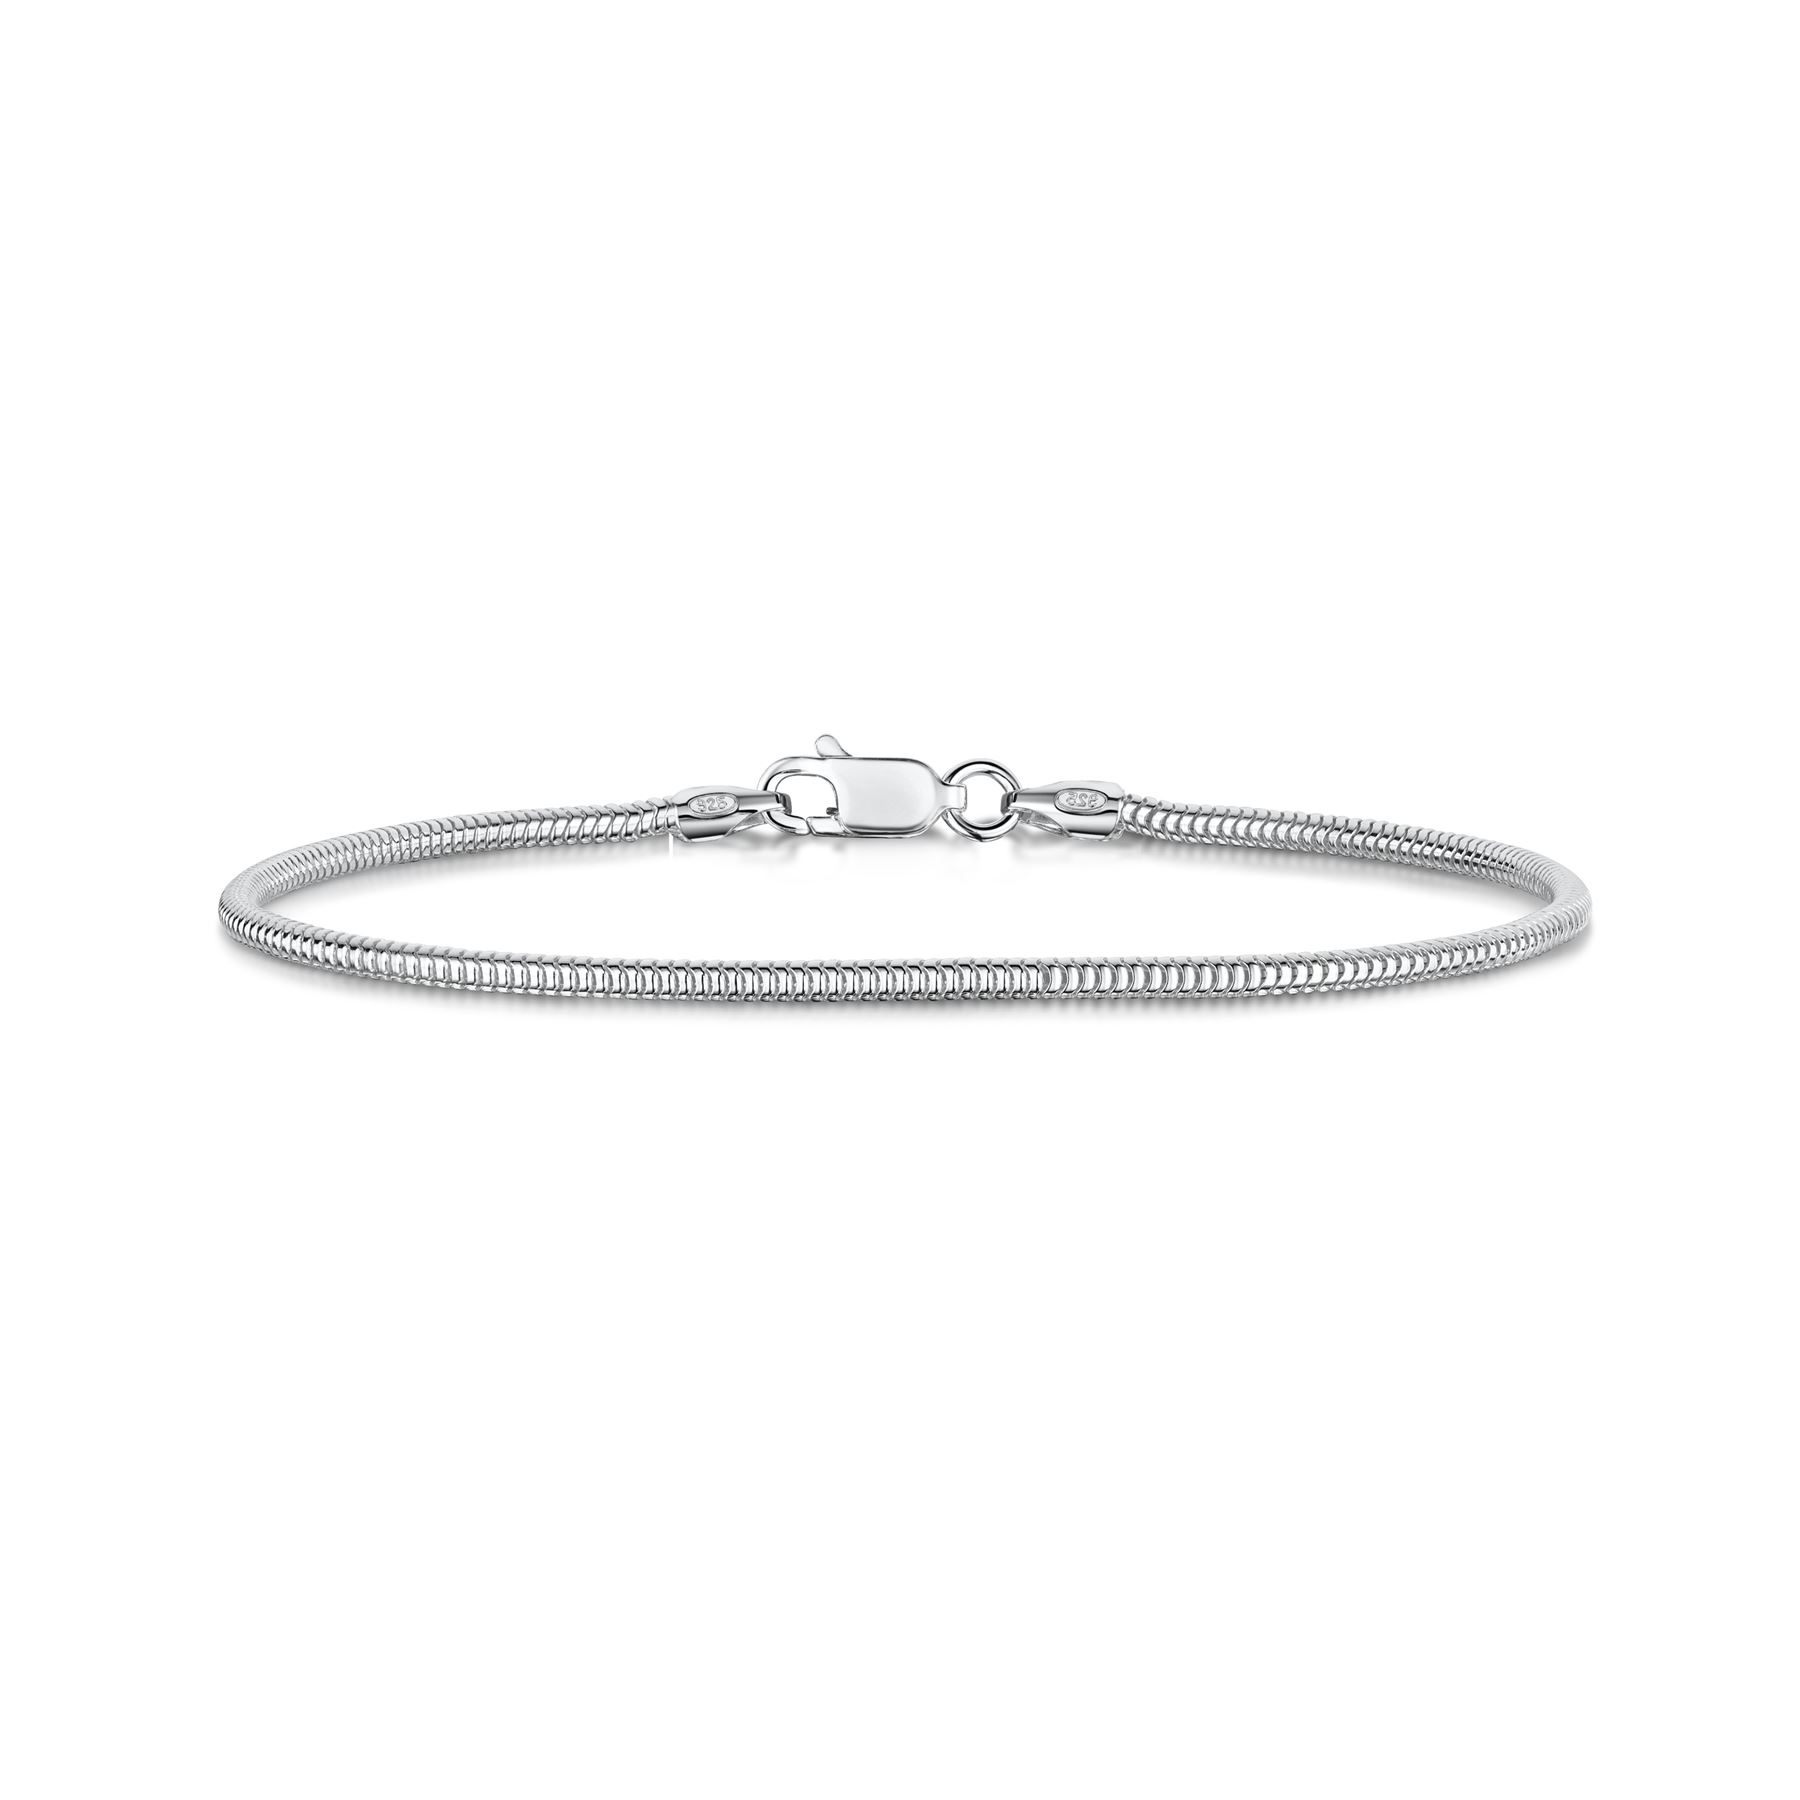 Amberta-Jewelry-Genuine-925-Sterling-Silver-Bracelet-Bangle-Chain-Made-in-Italy thumbnail 39